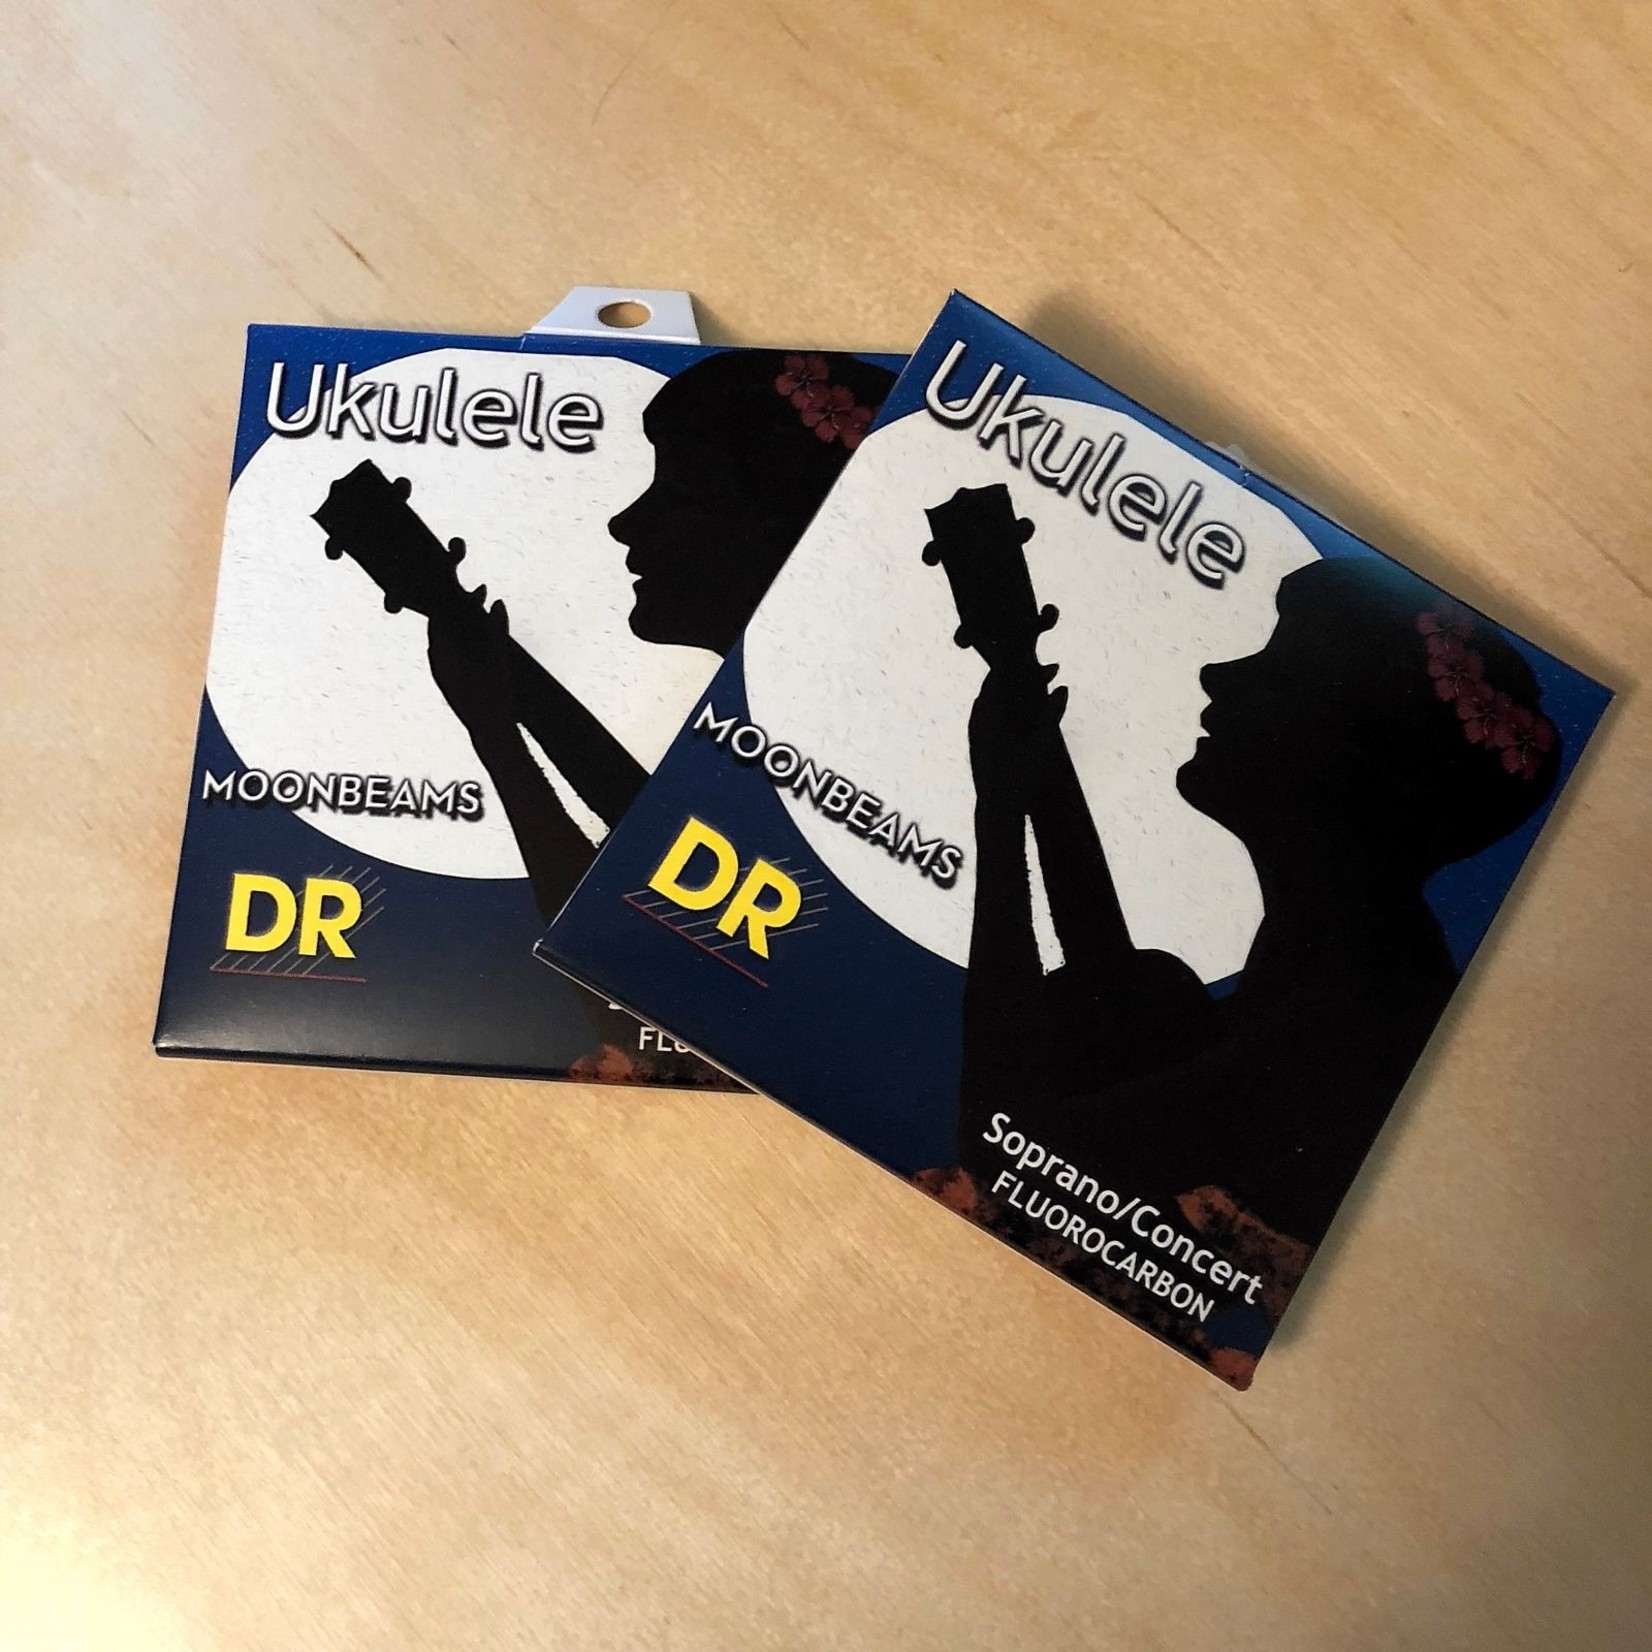 DR Strings 2x (two sets) DR Moonbeams Soprano/Concert Ukulele Strings, Clear Fluorocarbon